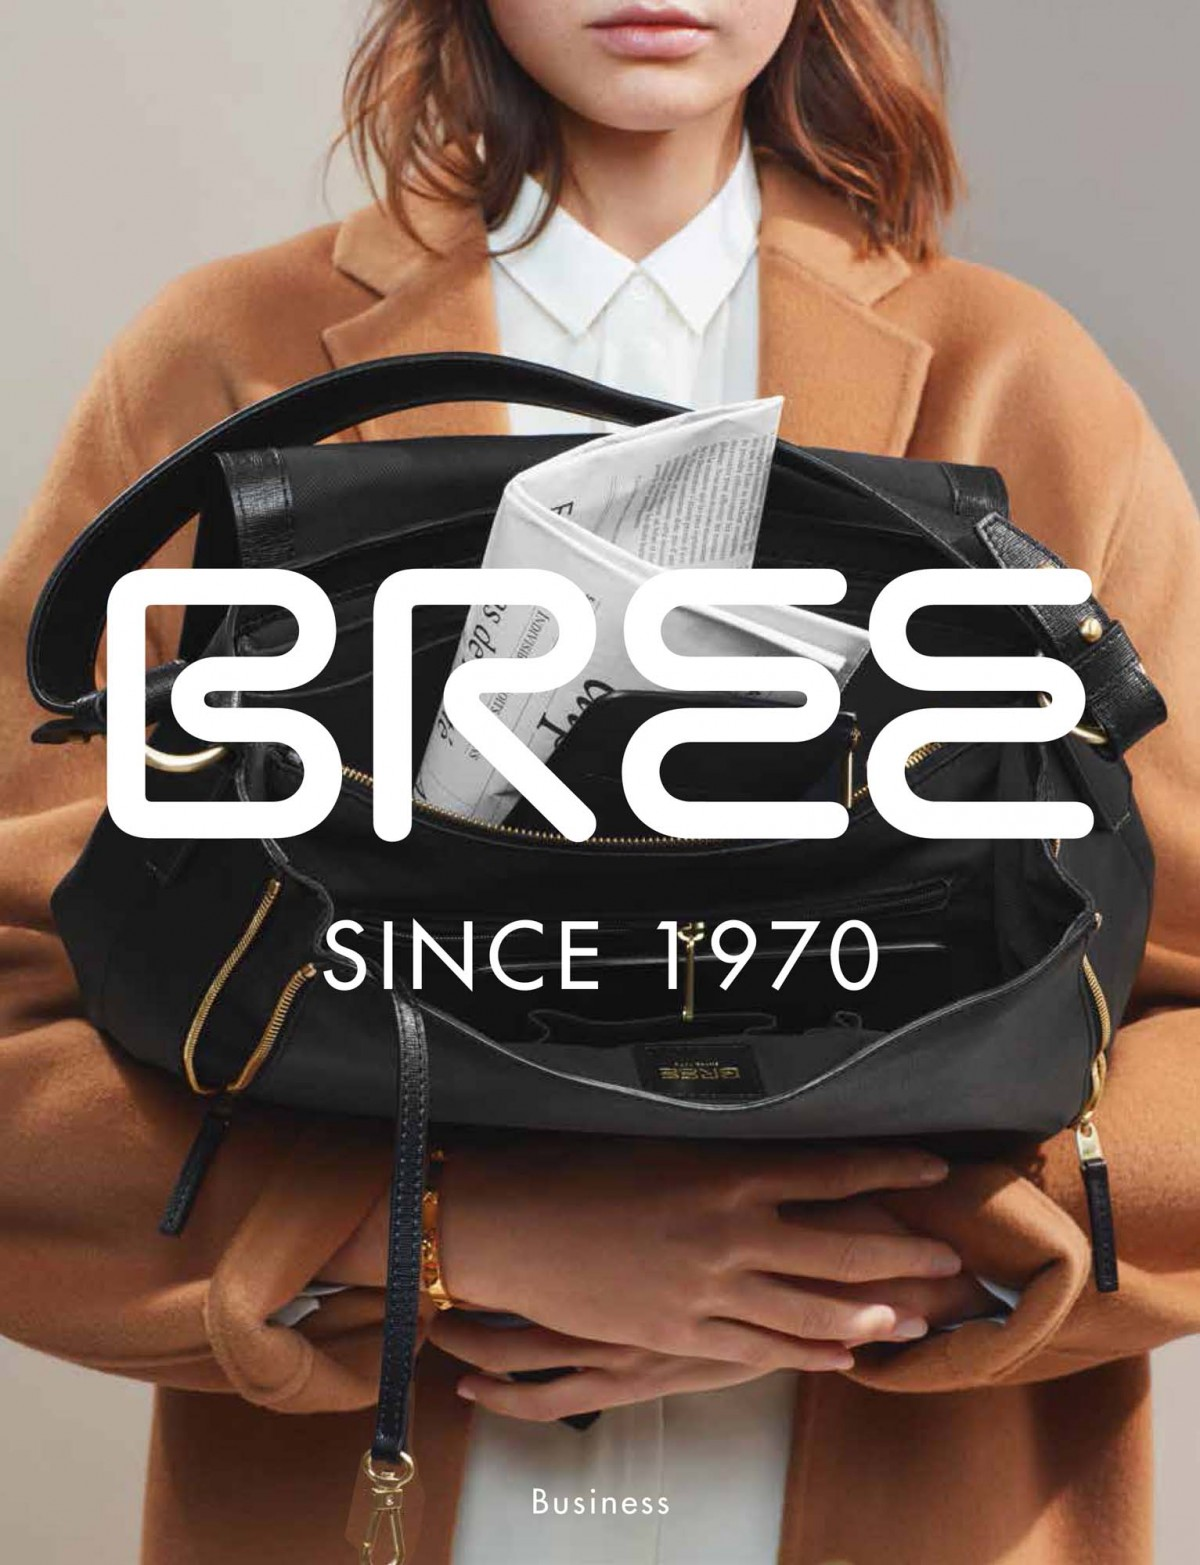 BREE Campaign by Tina Luther represented by stoever artists